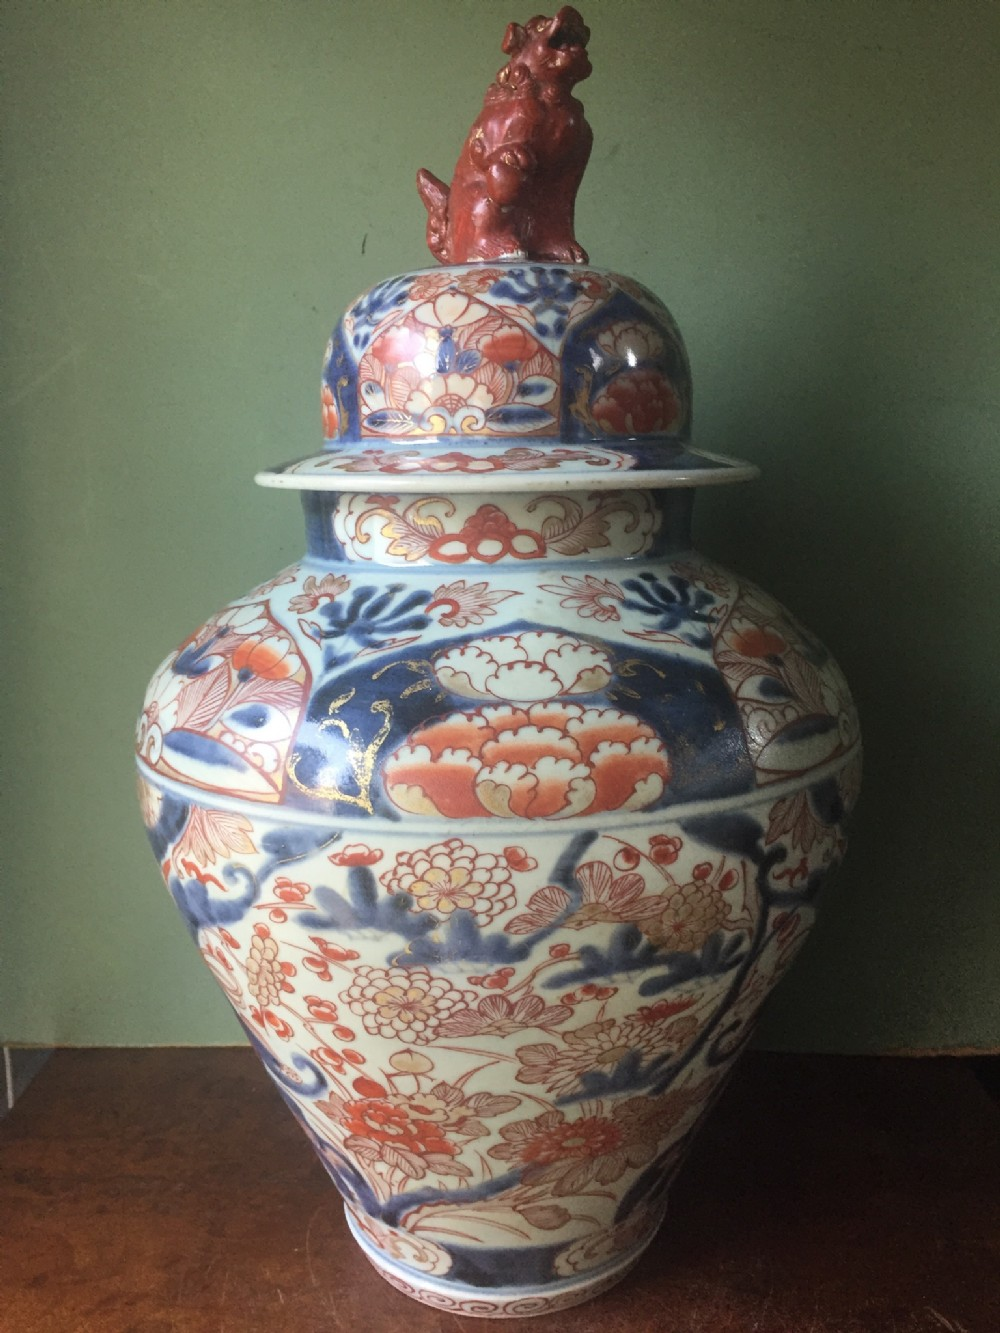 c18th japanese porcelain vase and cover decorated in the imari plalette